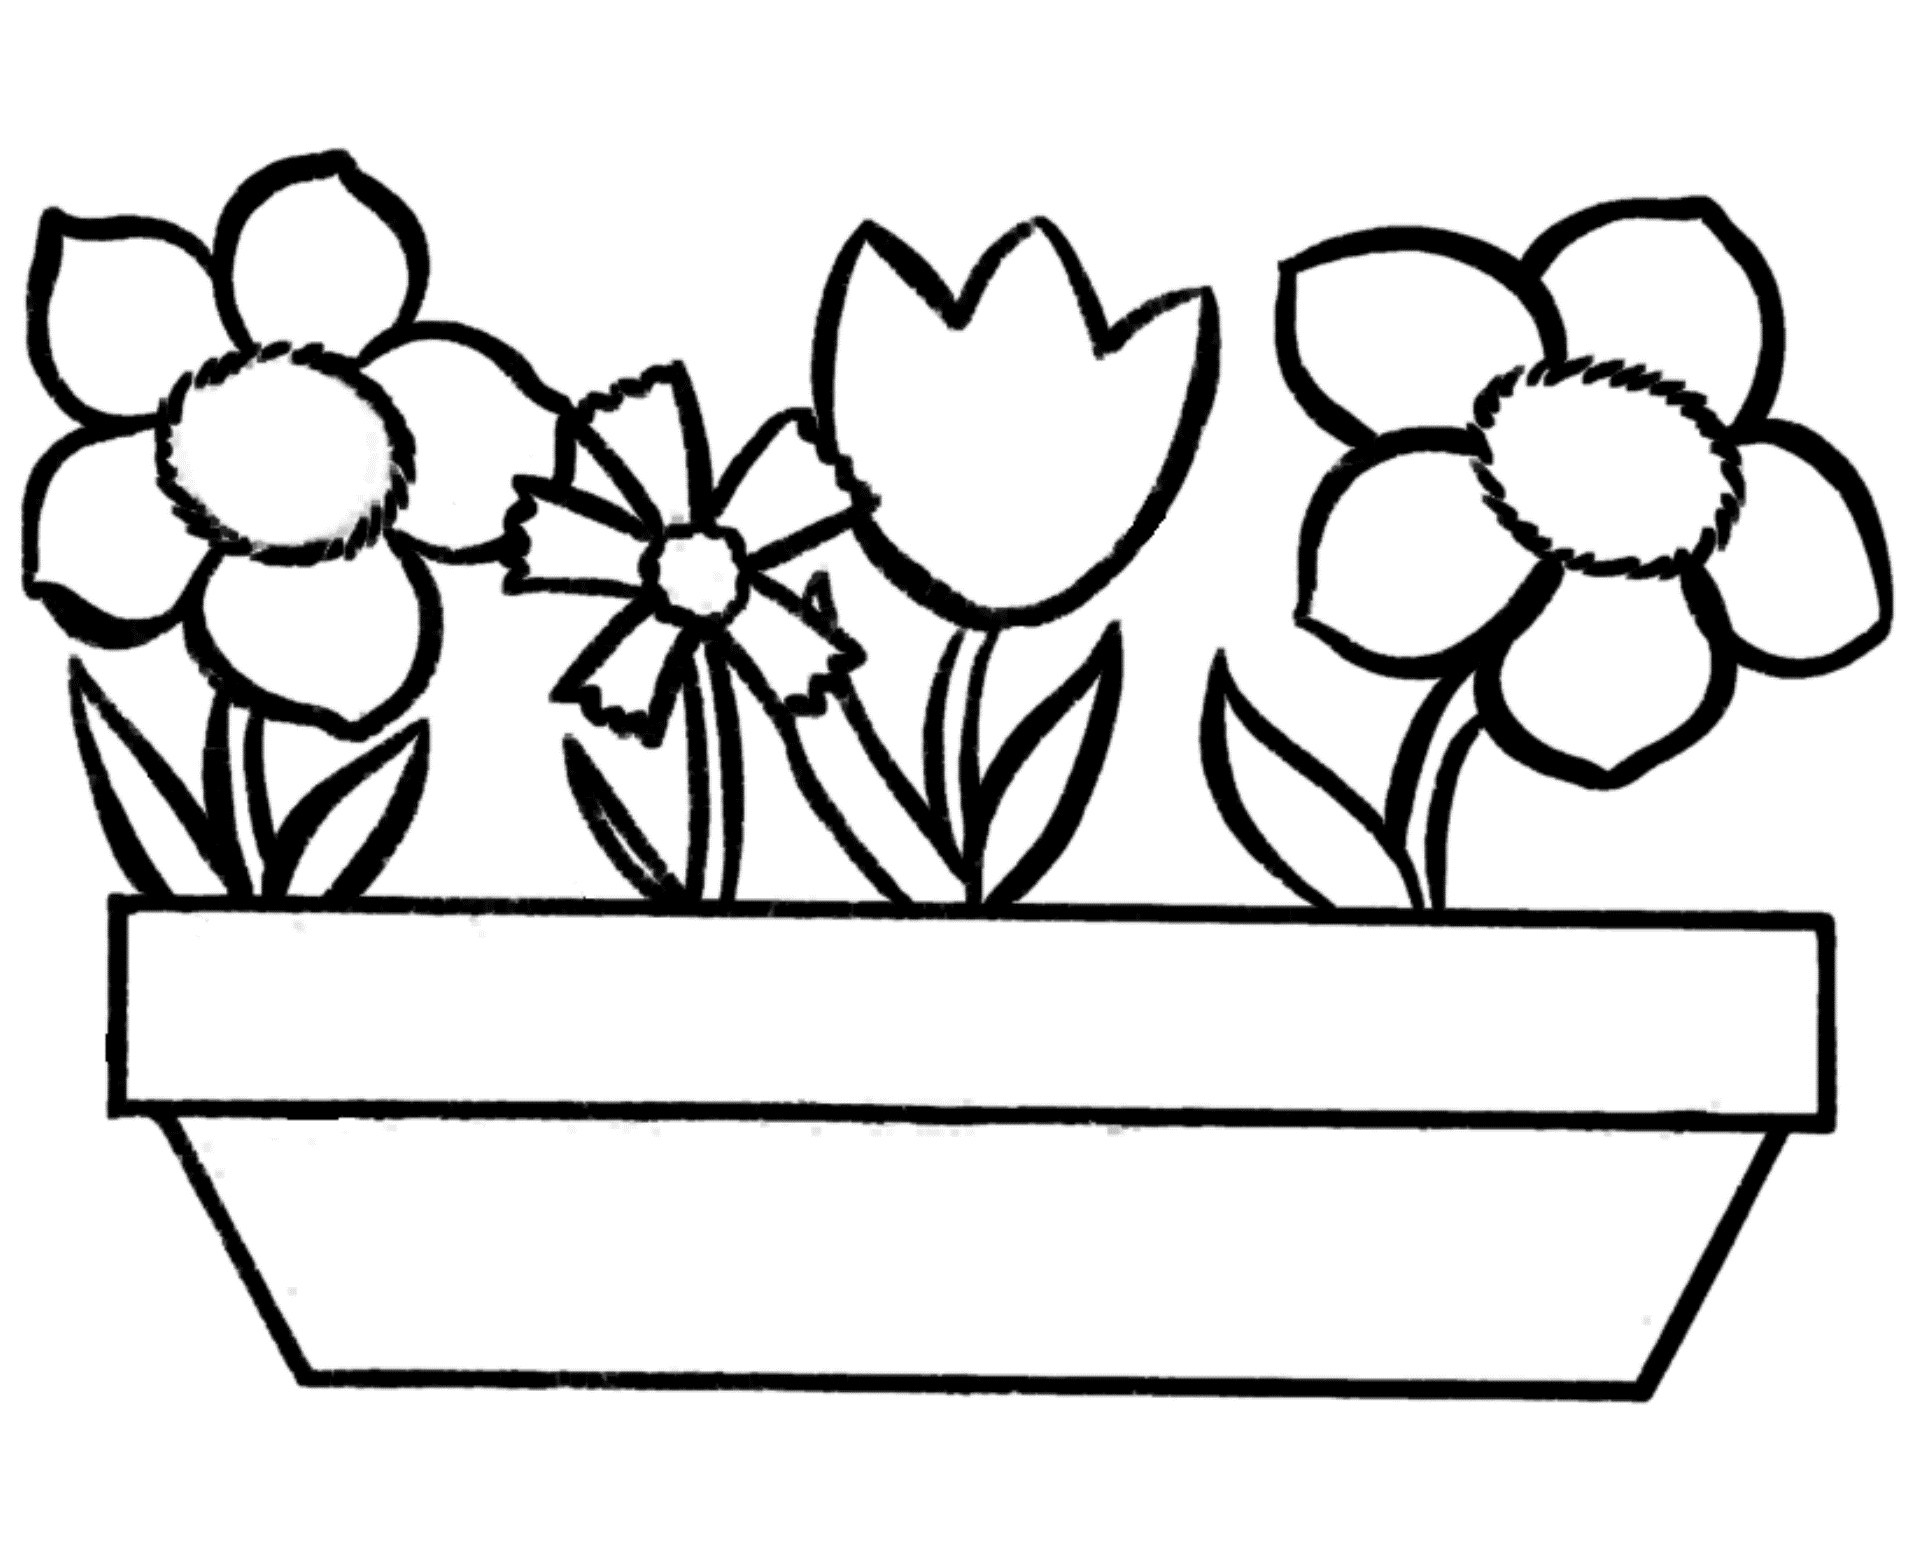 1911x1561 Number 8 Coloring Page Free Printable Coloring Pages regarding